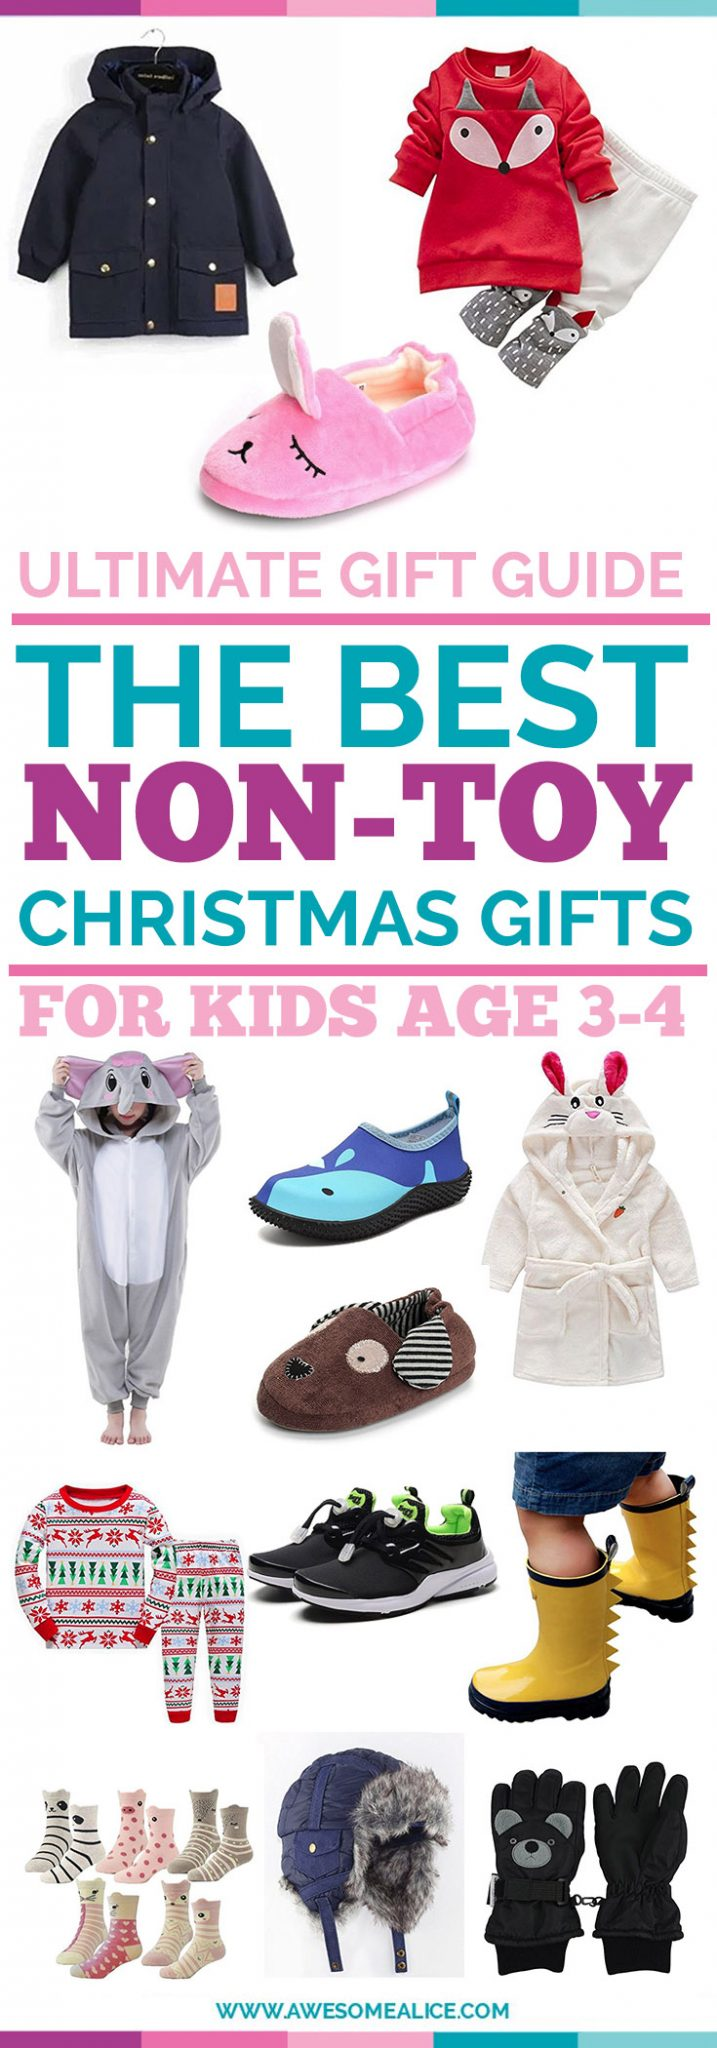 Best Toys For Age 3 : Christmas gift guide for kids the ultimate